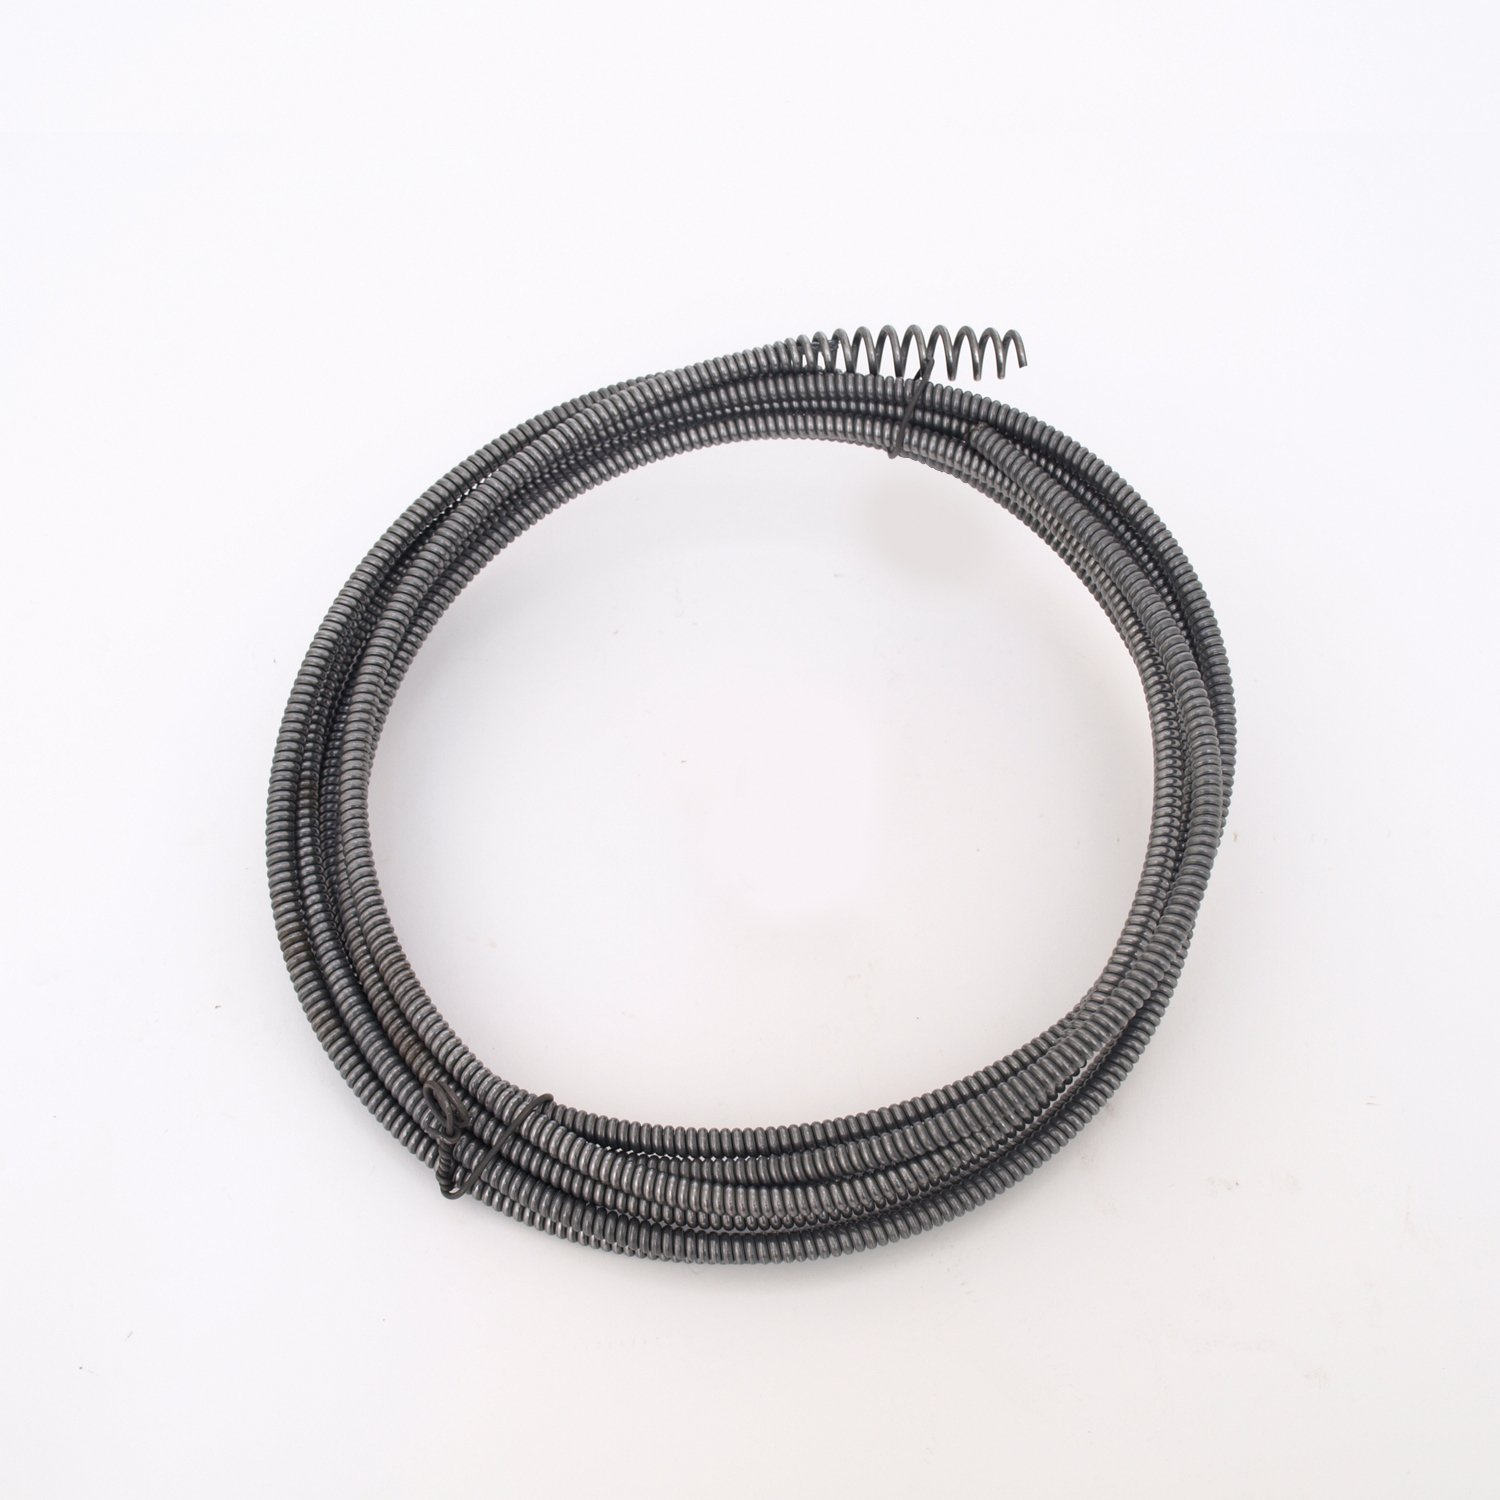 GENERAL WIRE SPRING GIDDS-214102 Pipe Cleaners Drain Cleaning Cable 1/4'' x 25', With El Basic Plug Head - 214102 by General Wire Spring